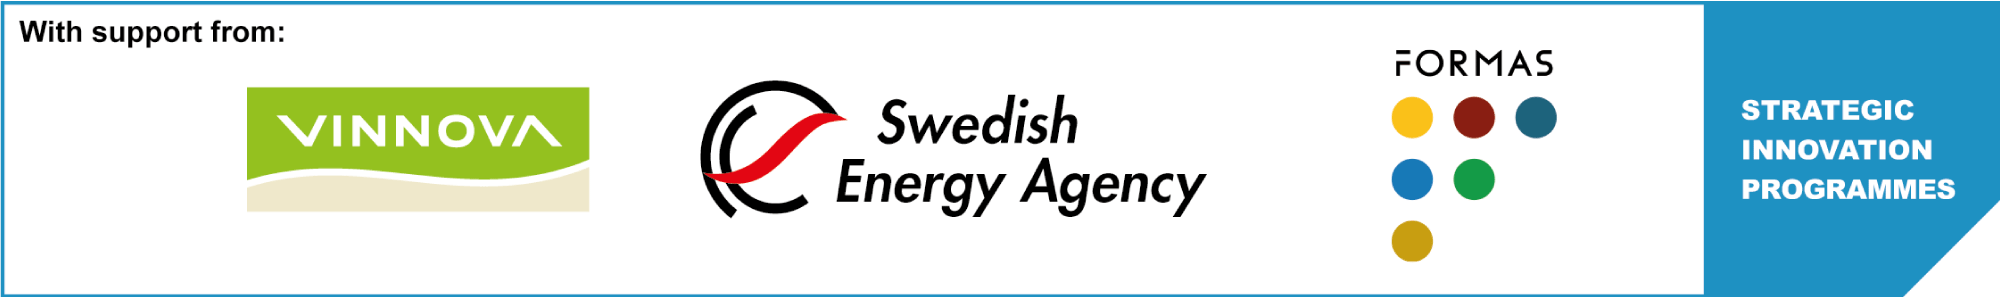 Vinnova Formas Swedish Energy Agency logos